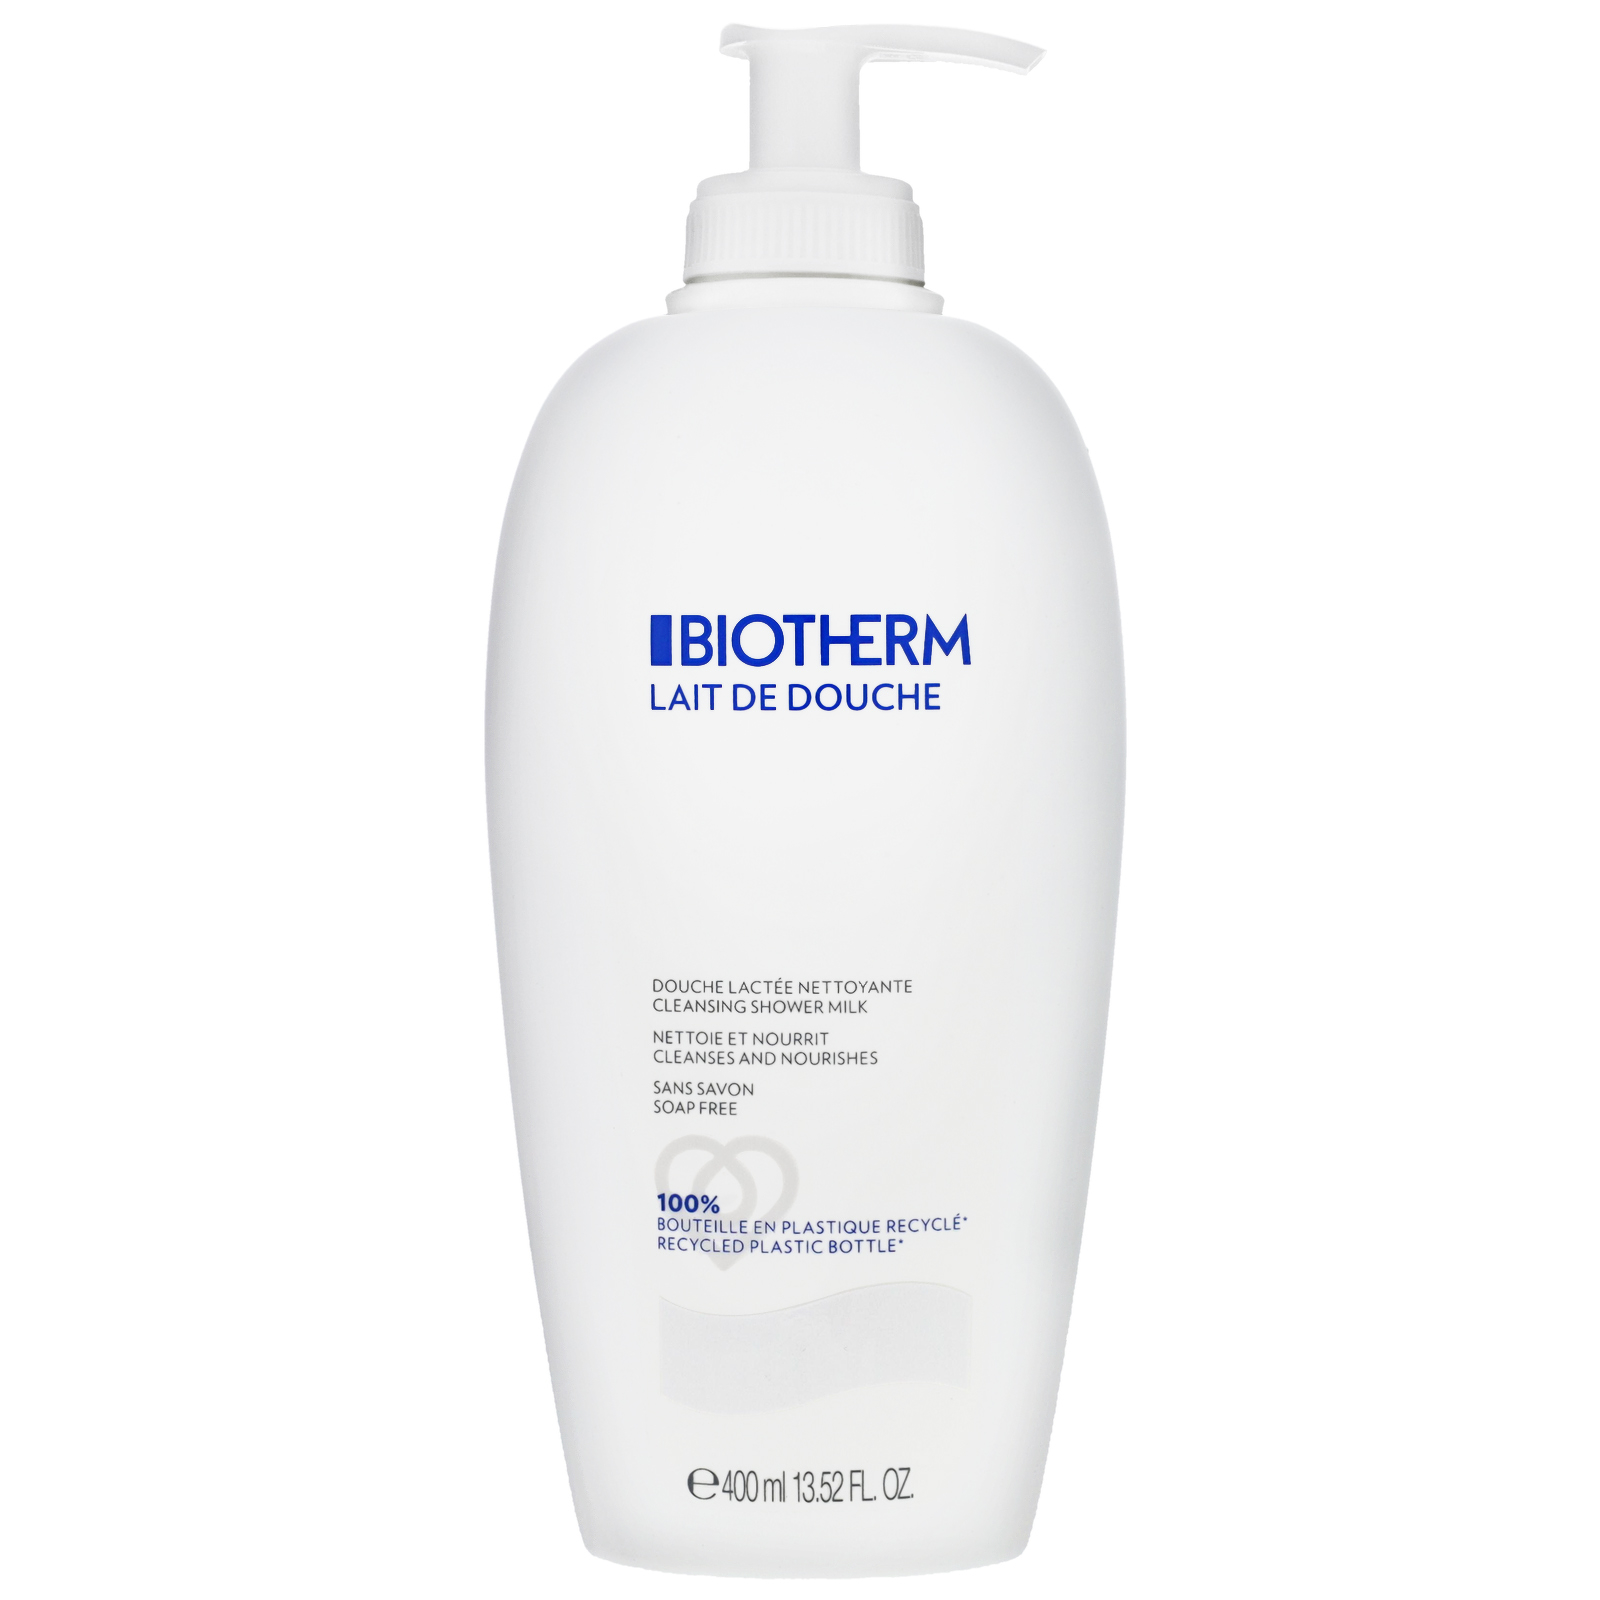 Biotherm Lait Corporel Lait De Douche Cleansing Shower Milk 400ml